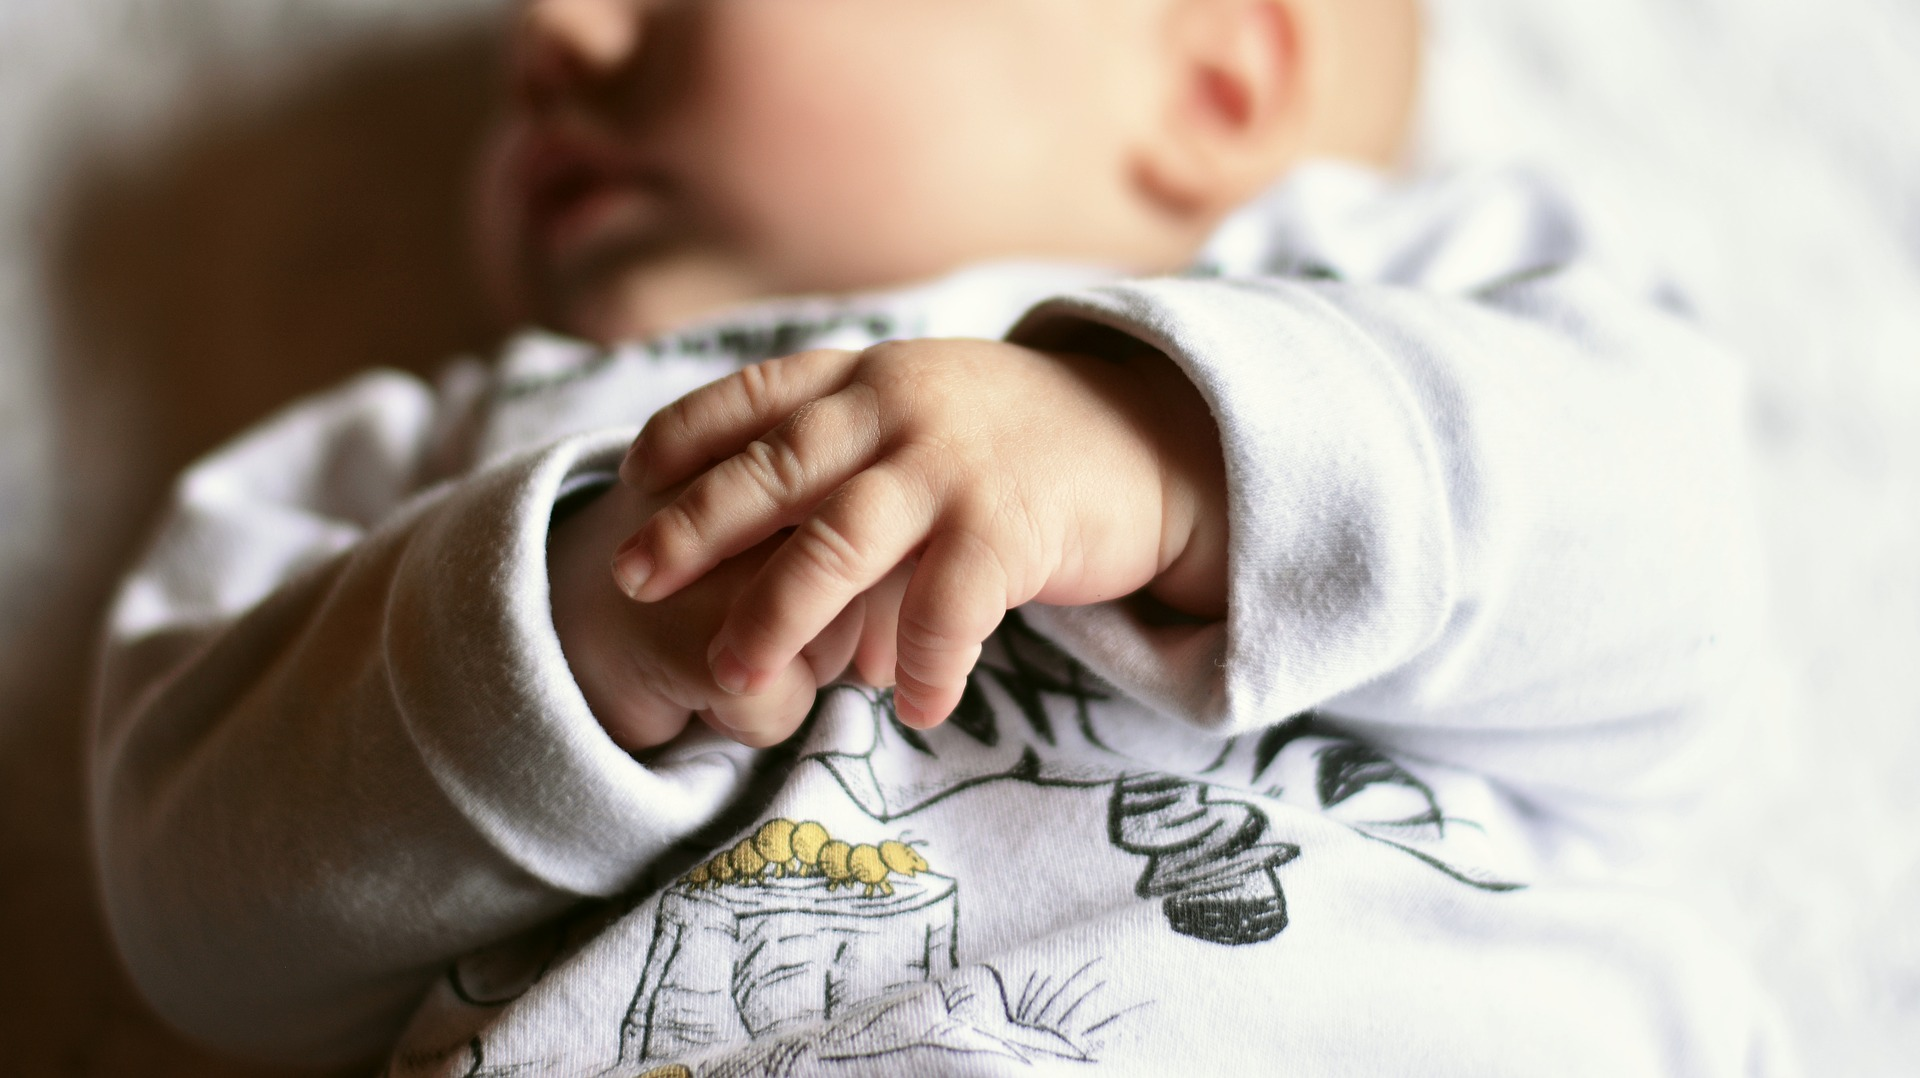 photo of a newborn baby and their hands